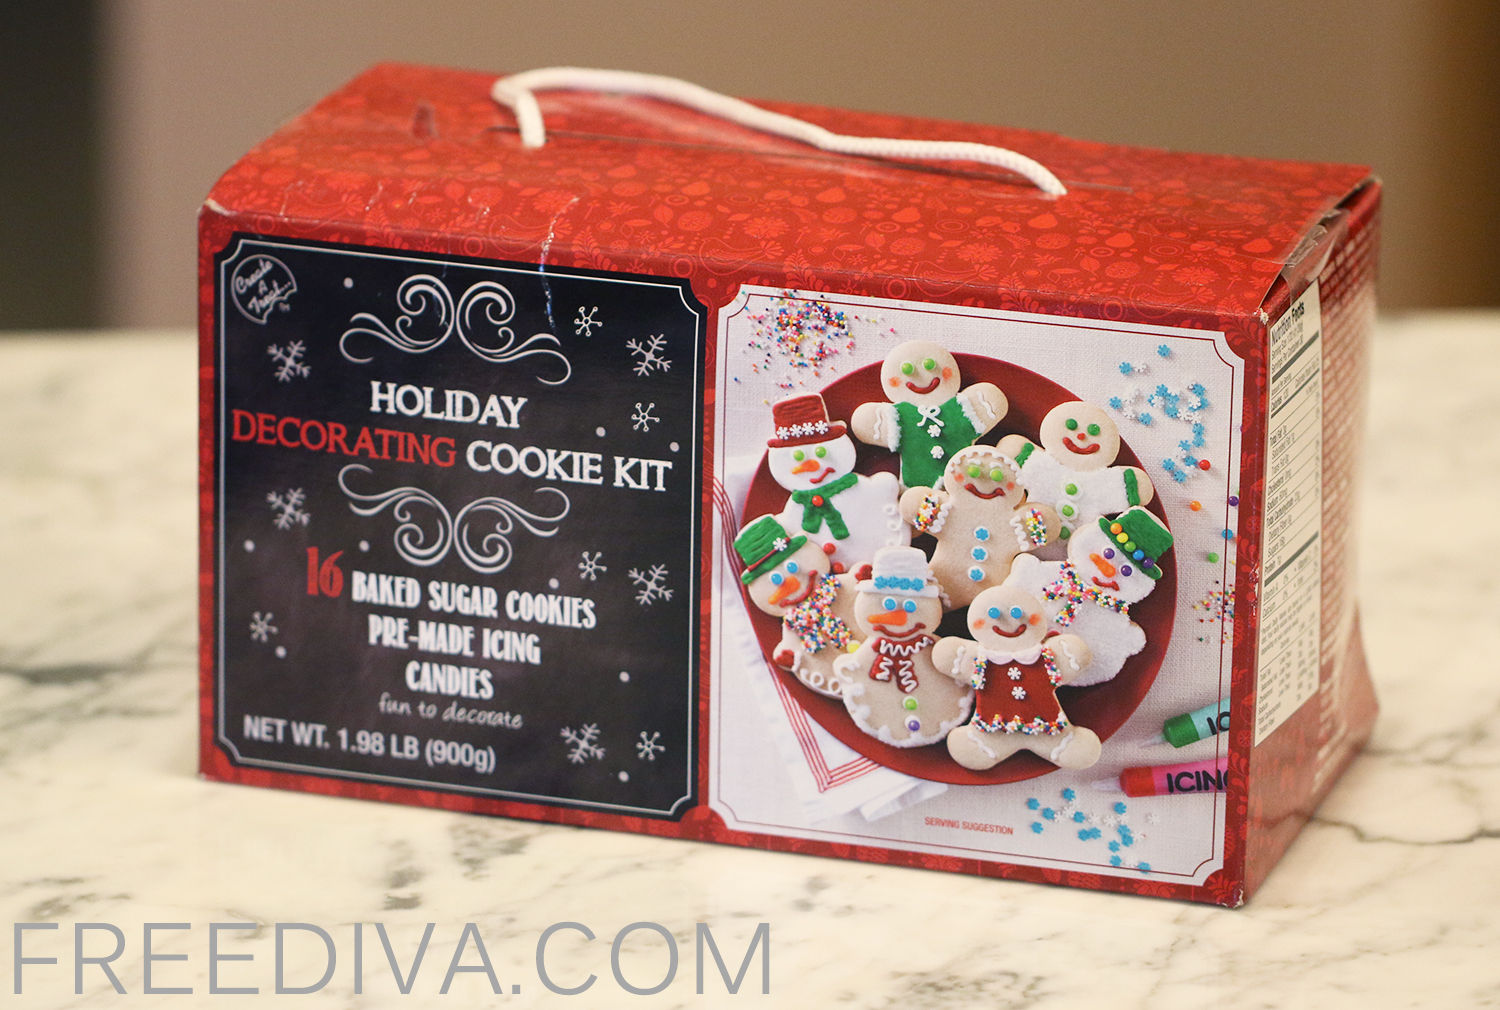 Holiday Decorating Cookie Kit